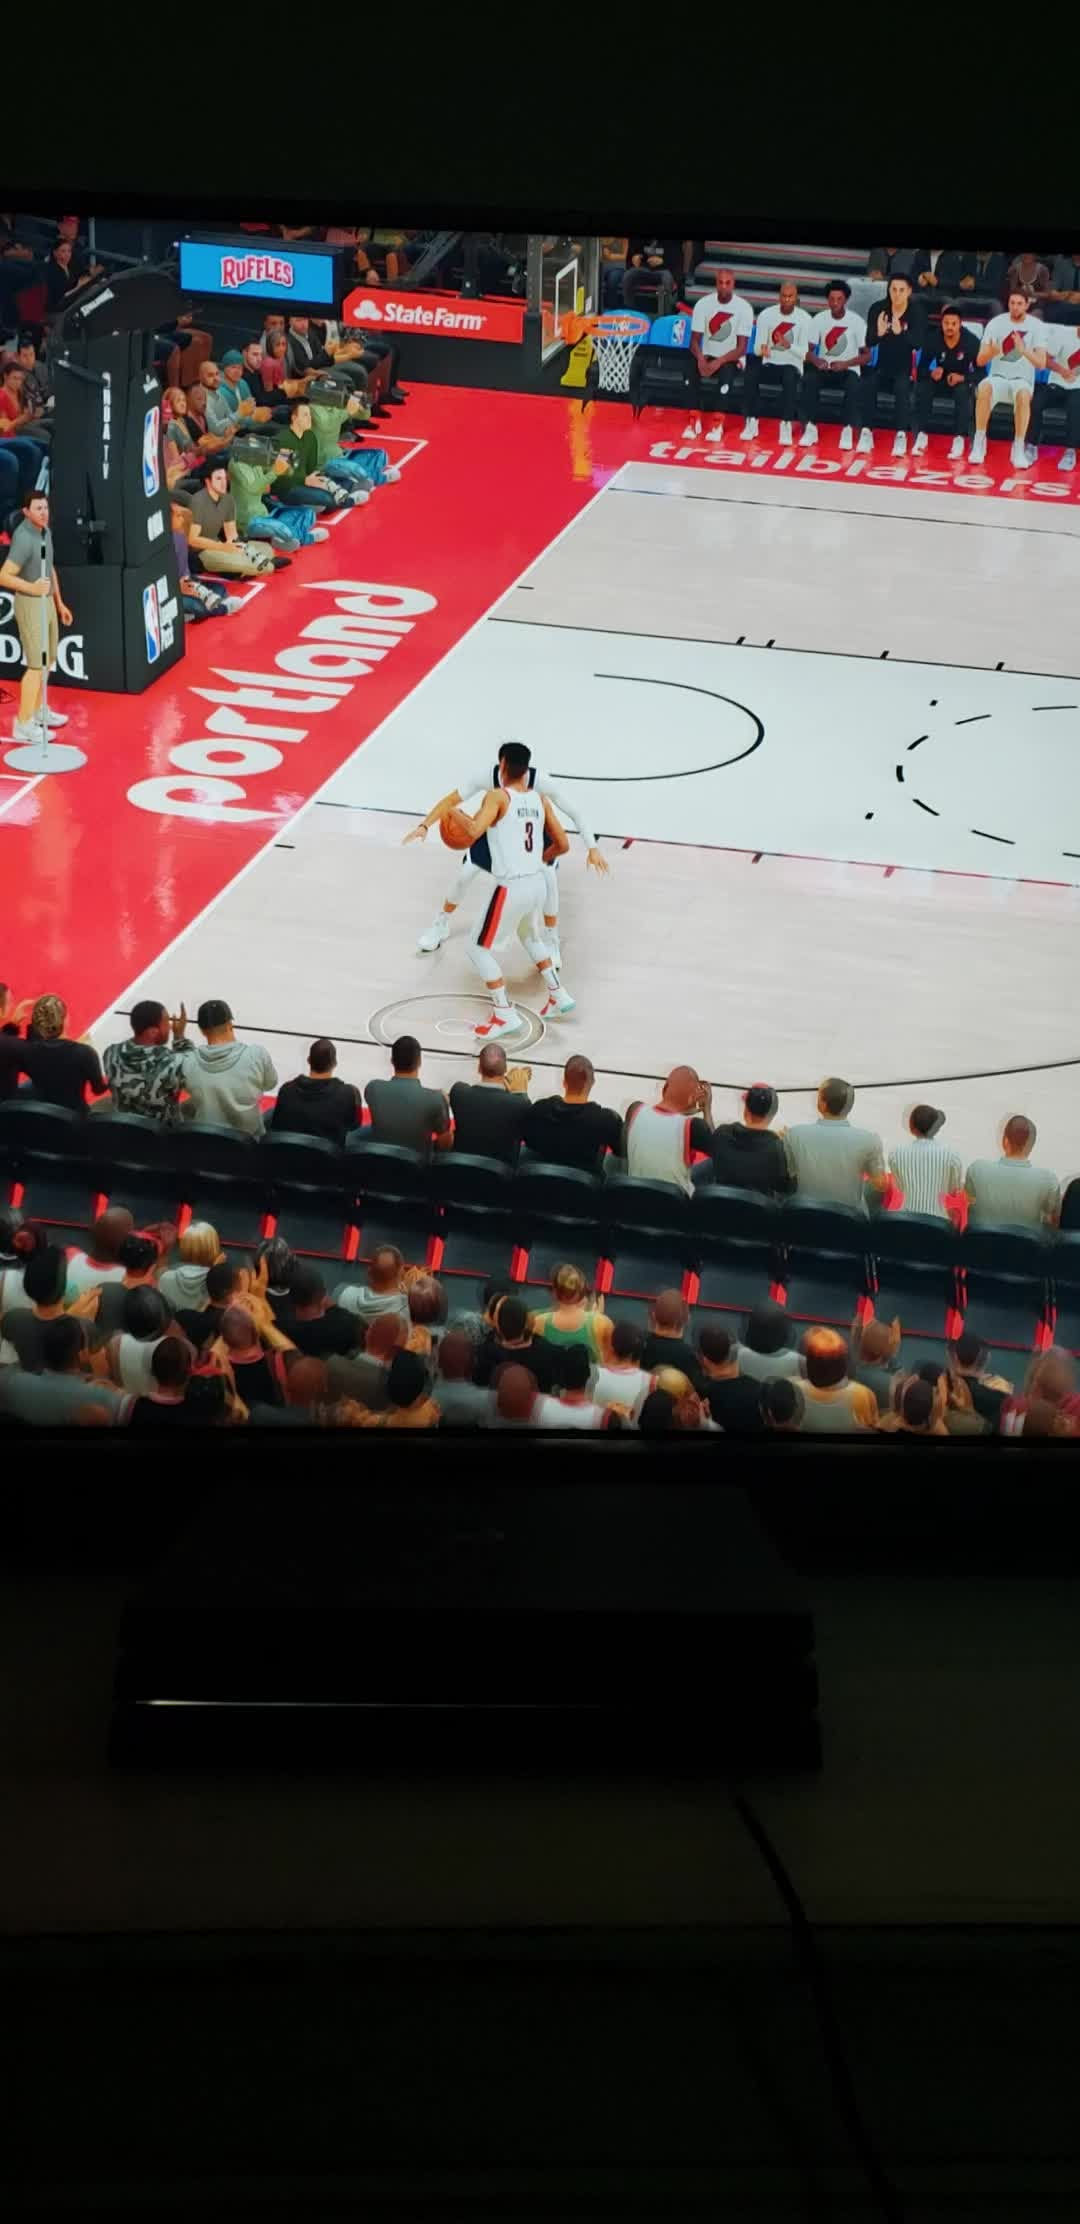 NBA 2K: General - 😁 What do you think my 3pt shot is on? I'm 97 overall, 6'10 Rim Protector...🤔 video cover image 0